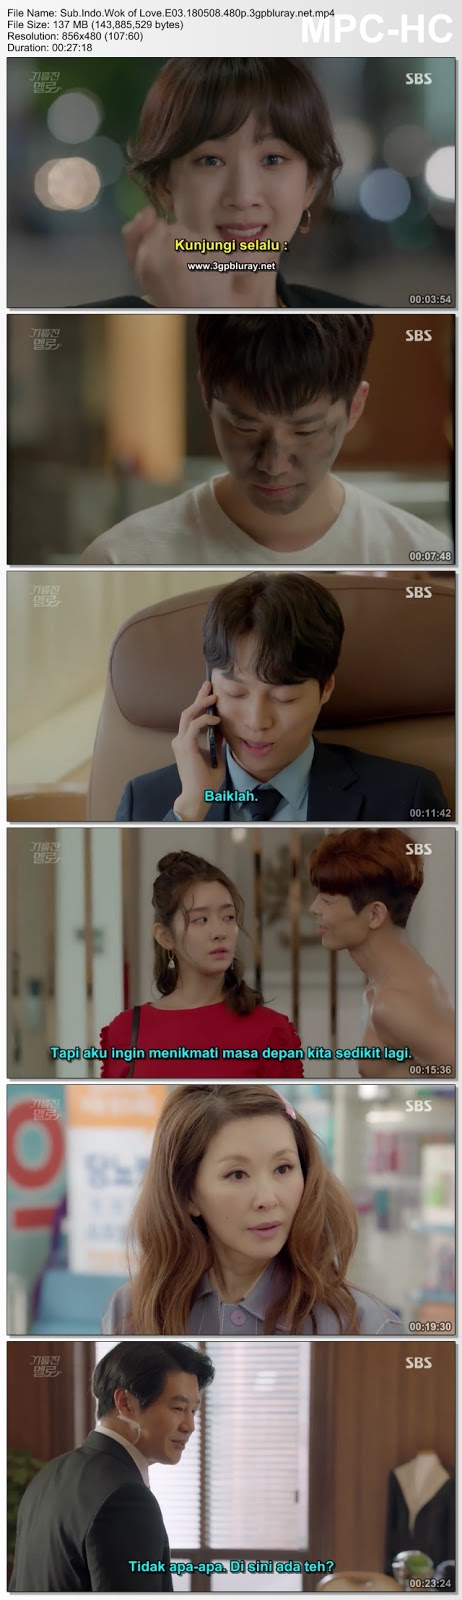 Screenshots Download Drama Korea Greasy Melo aka 기름진 멜로 aka Gireumjin Mello (2018) Episode 03 HDTV 1080p 720p 480p 3GP MP4 NEXT Subtitle Indonesia Google Drive Free Full Movie Online